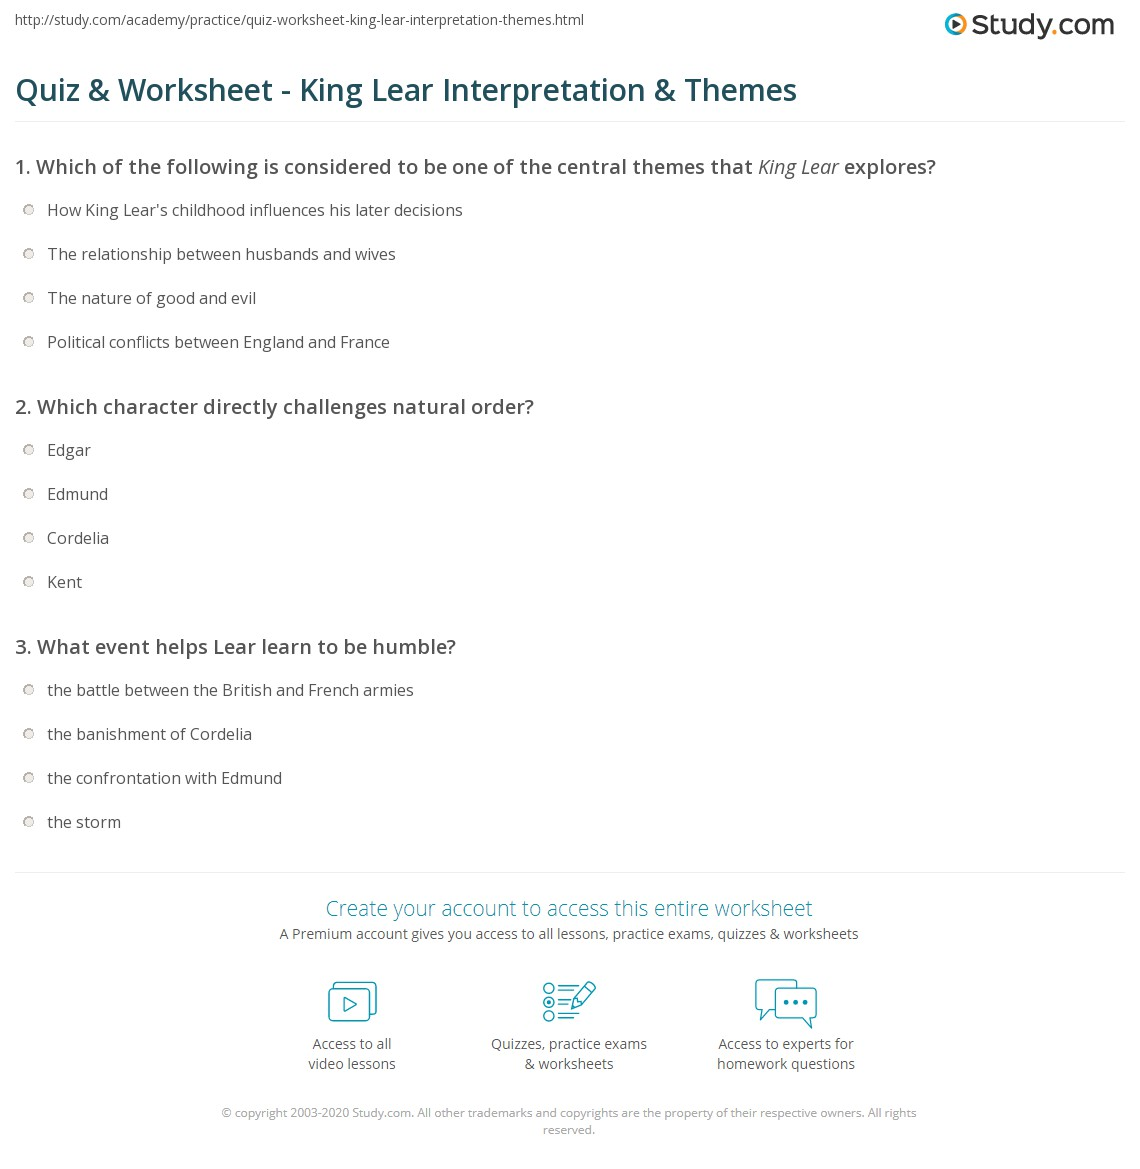 king lear essays visual essay king lear quiz worksheet king lear  quiz worksheet king lear interpretation themes com print king lear themes analysis worksheet